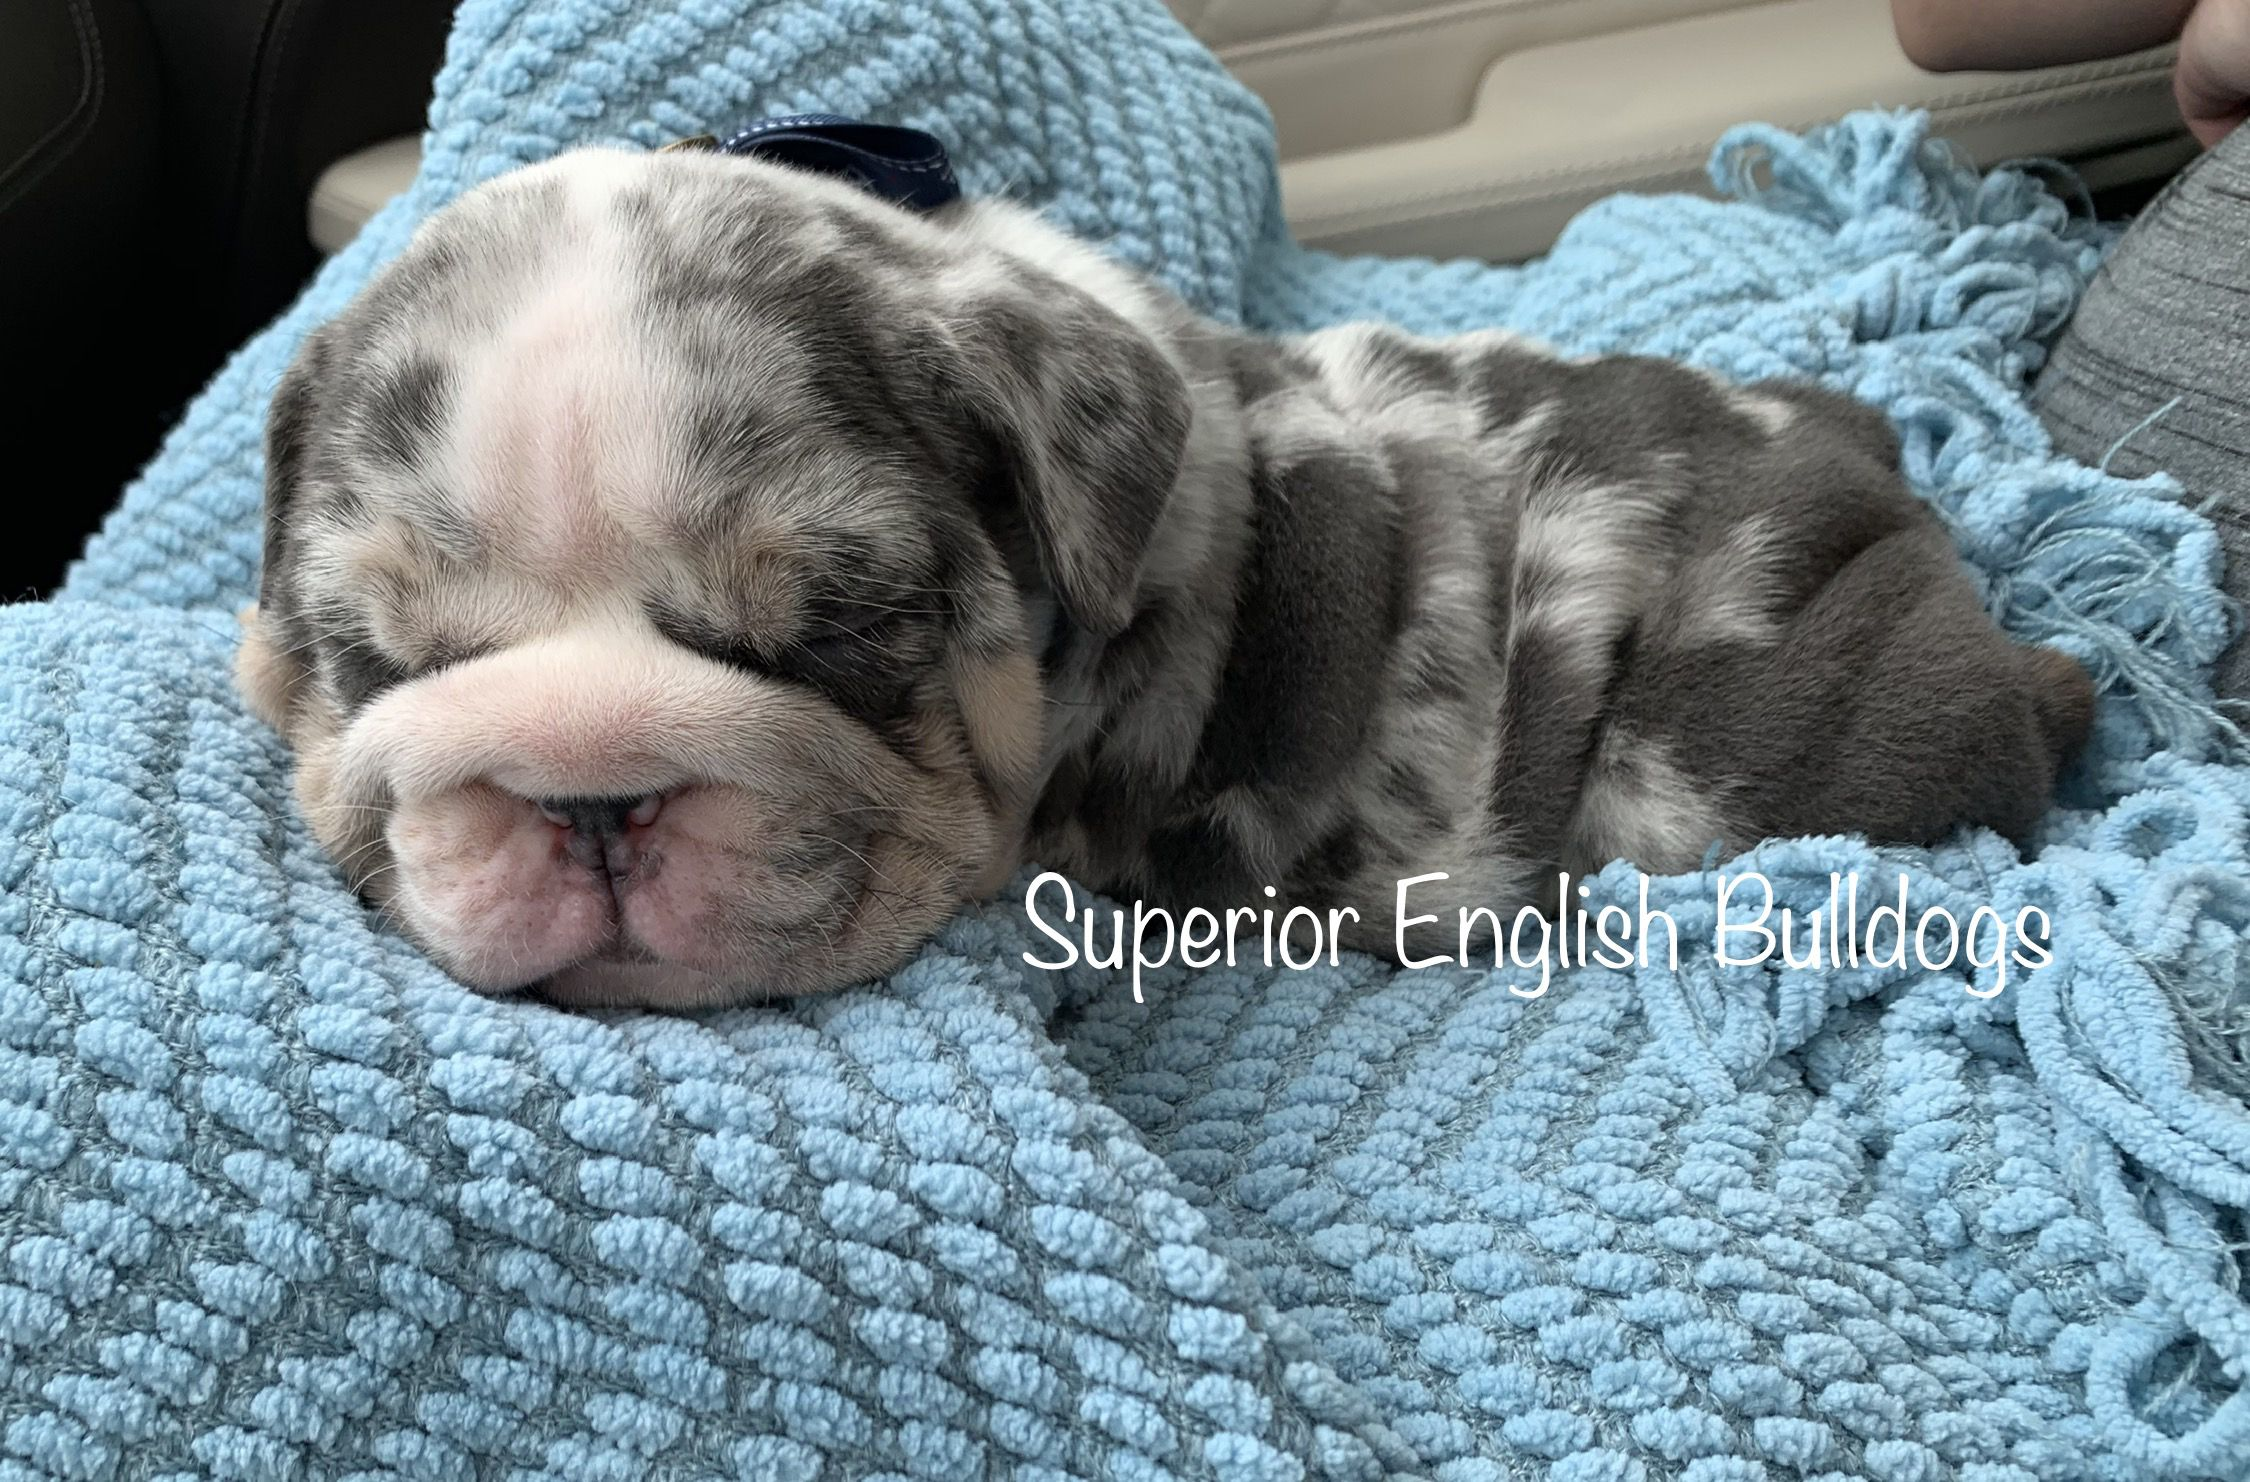 Pin by Superior English Bulldogs on English Bulldogs